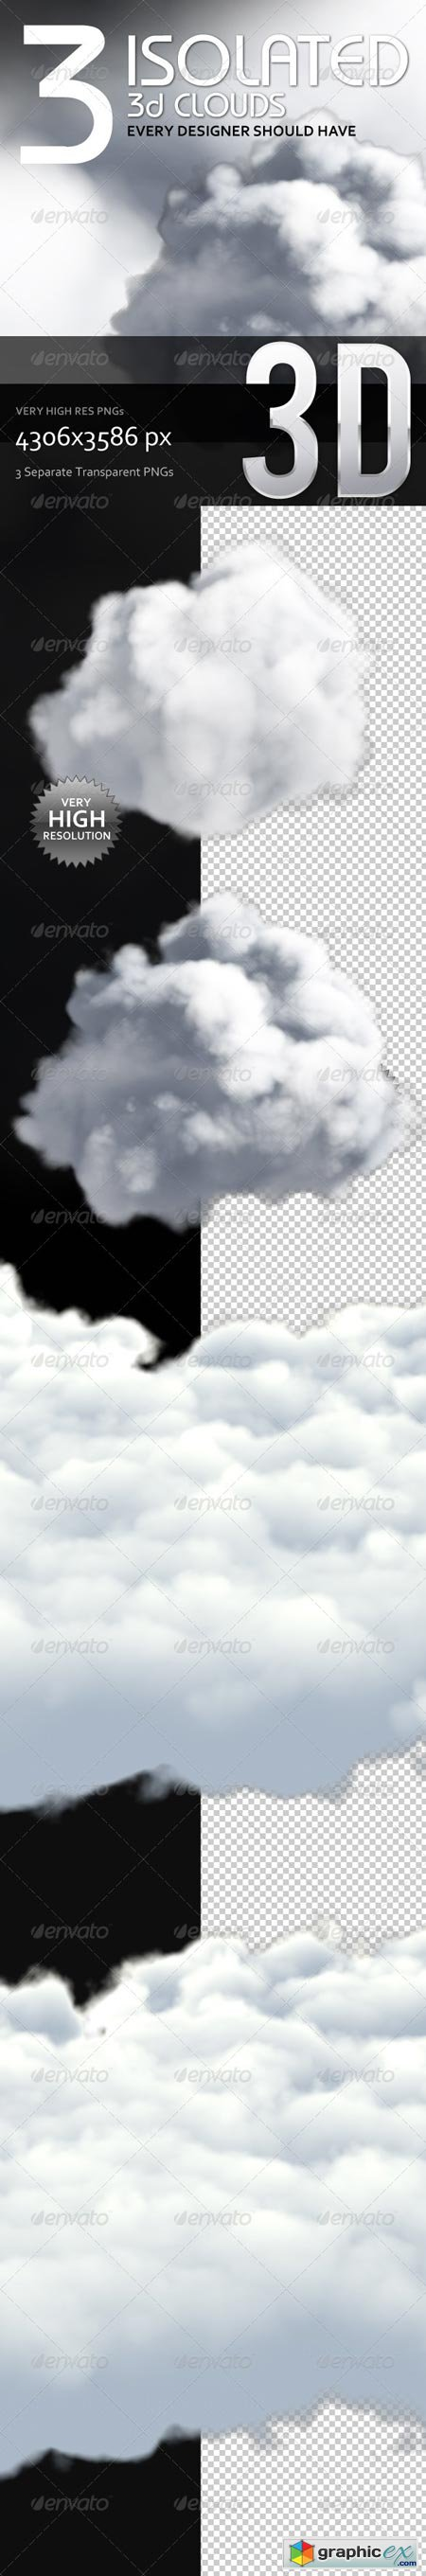 3 Isolated 3D Clouds 6452143